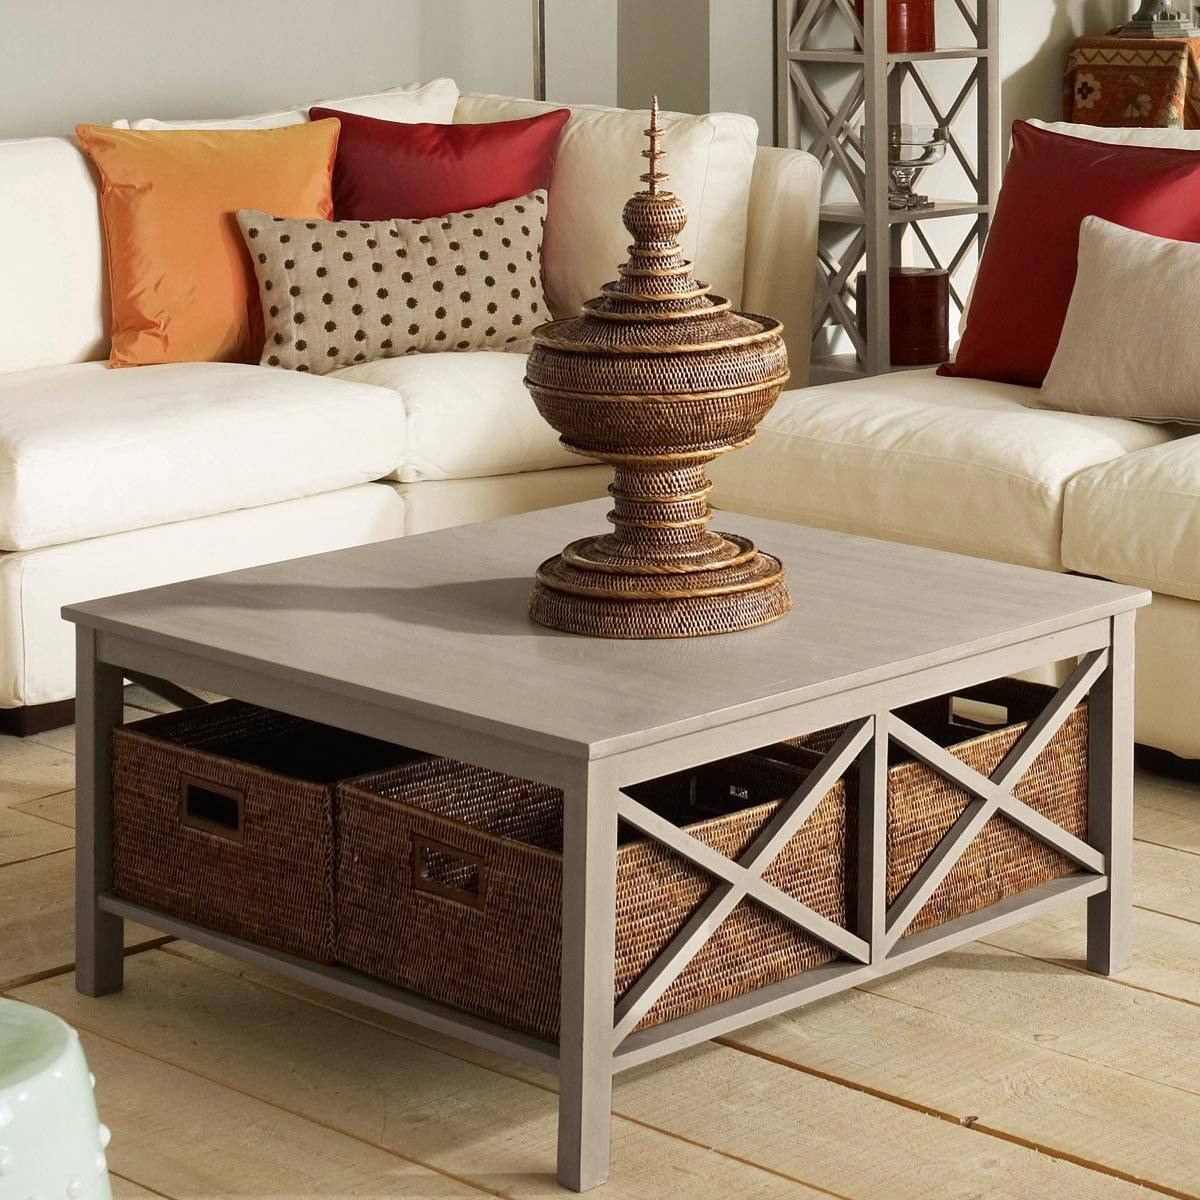 Marvelous Style Square Coffee Table With Storage – 50 Square with Coffee Tables With Basket Storage Underneath (Image 21 of 30)